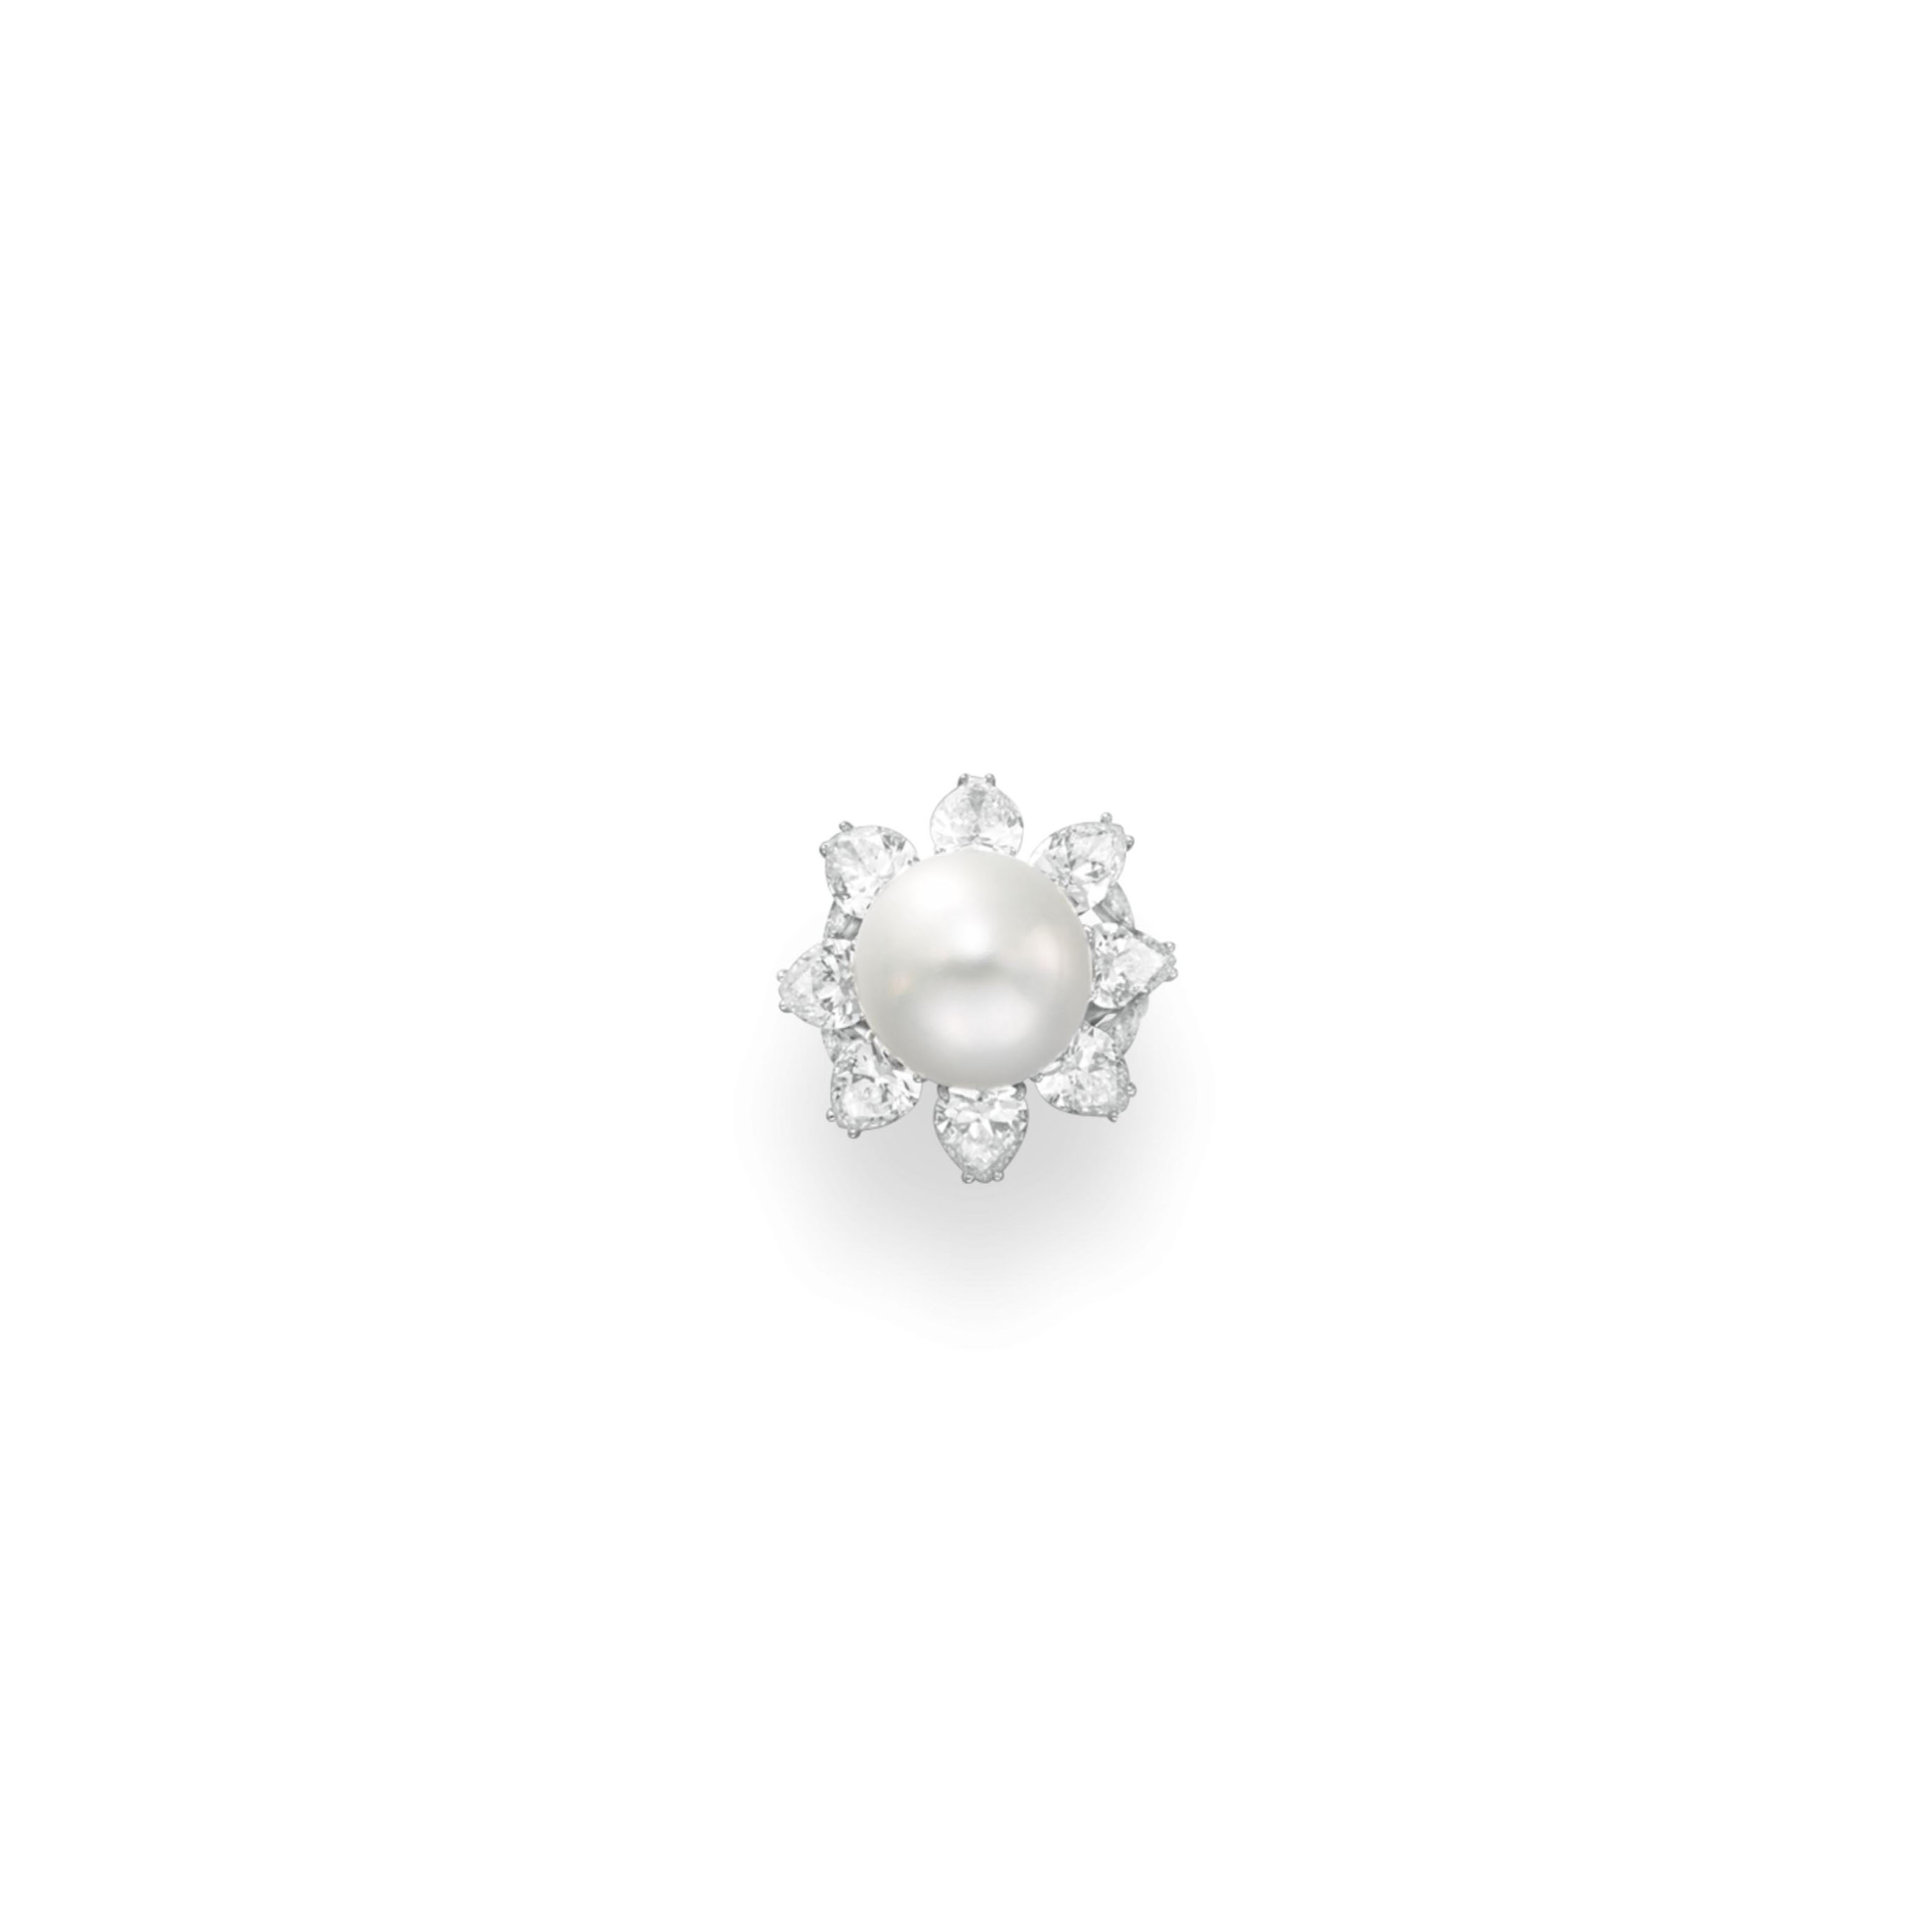 A CULTURED PEARL AND DIAMOND RING, BY RUSER